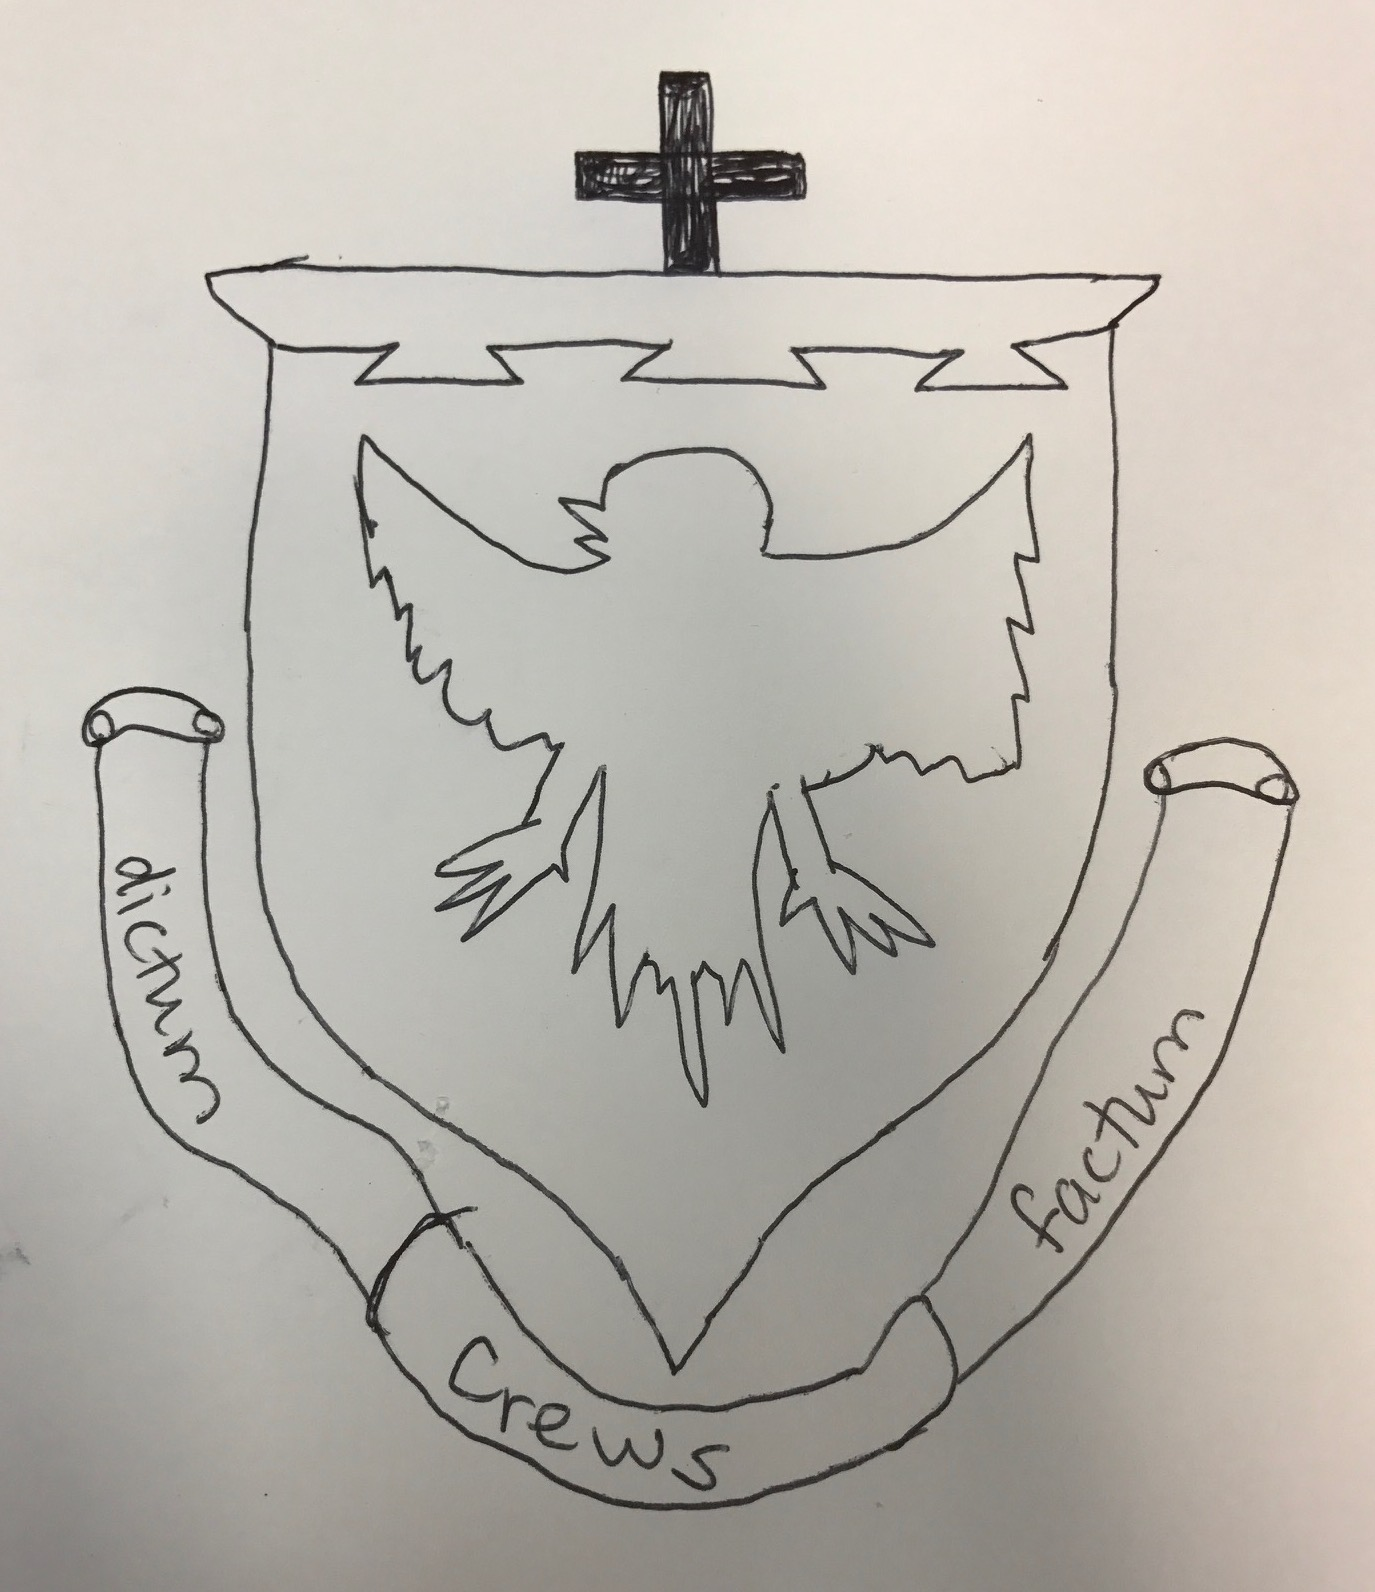 A simple coat of arms (emblem) I designed for a client from the USA based on his rough sketch 2